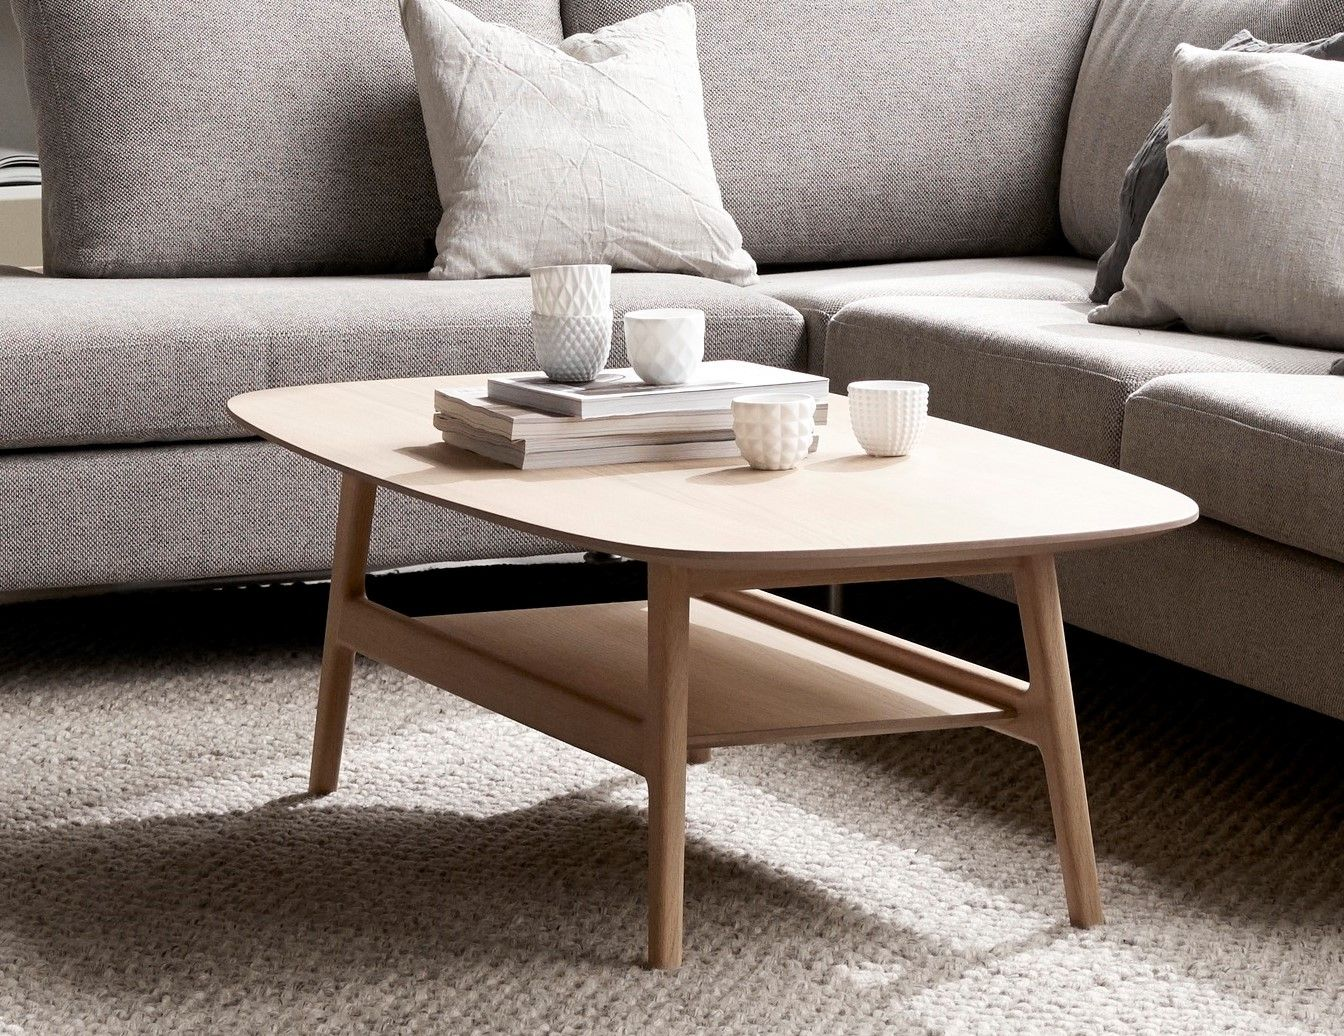 Image Result For Boconcept Living Room Table Basse Table